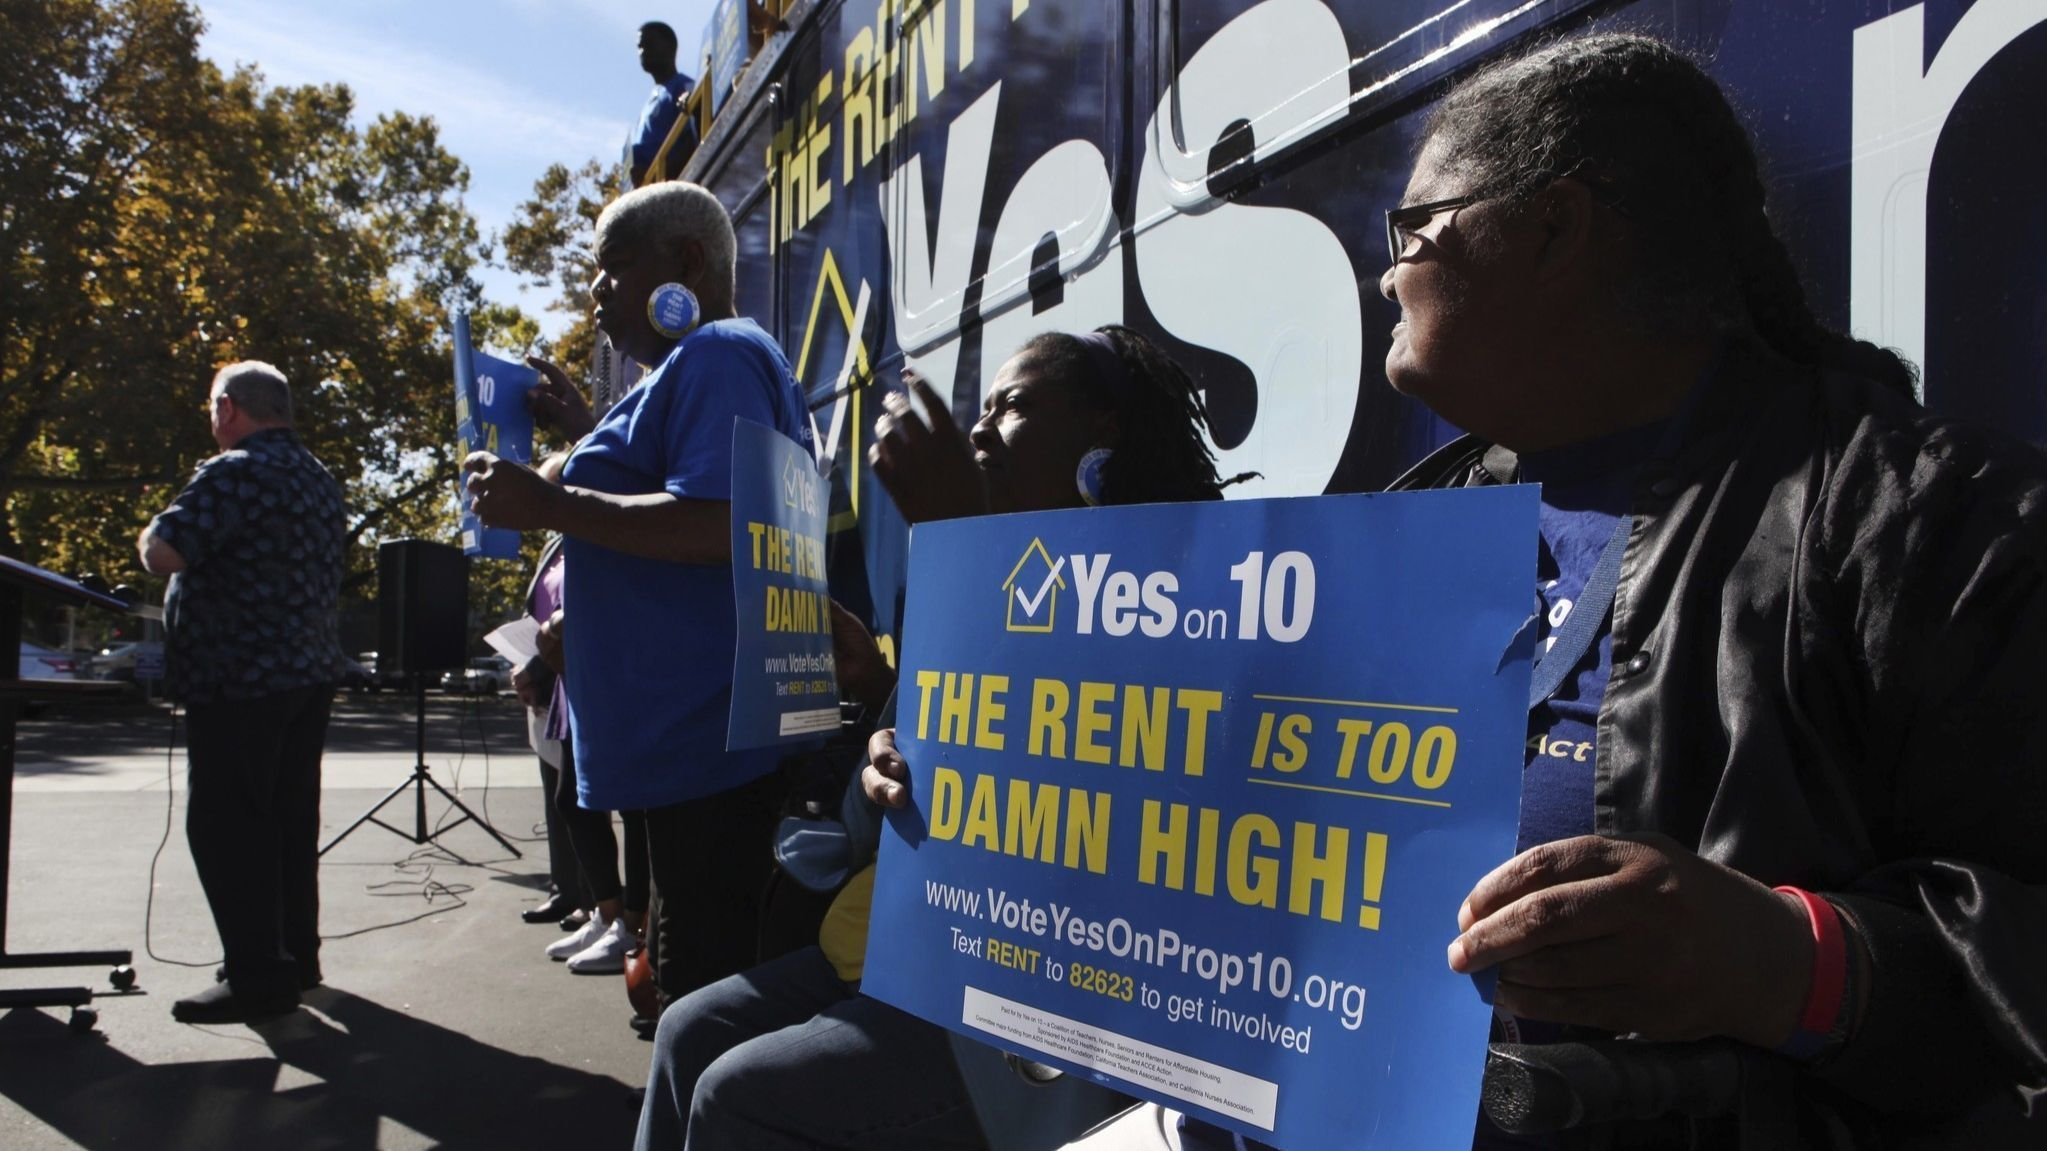 California's rent control initiative was crushed in the election. Don't expect the issue to go away